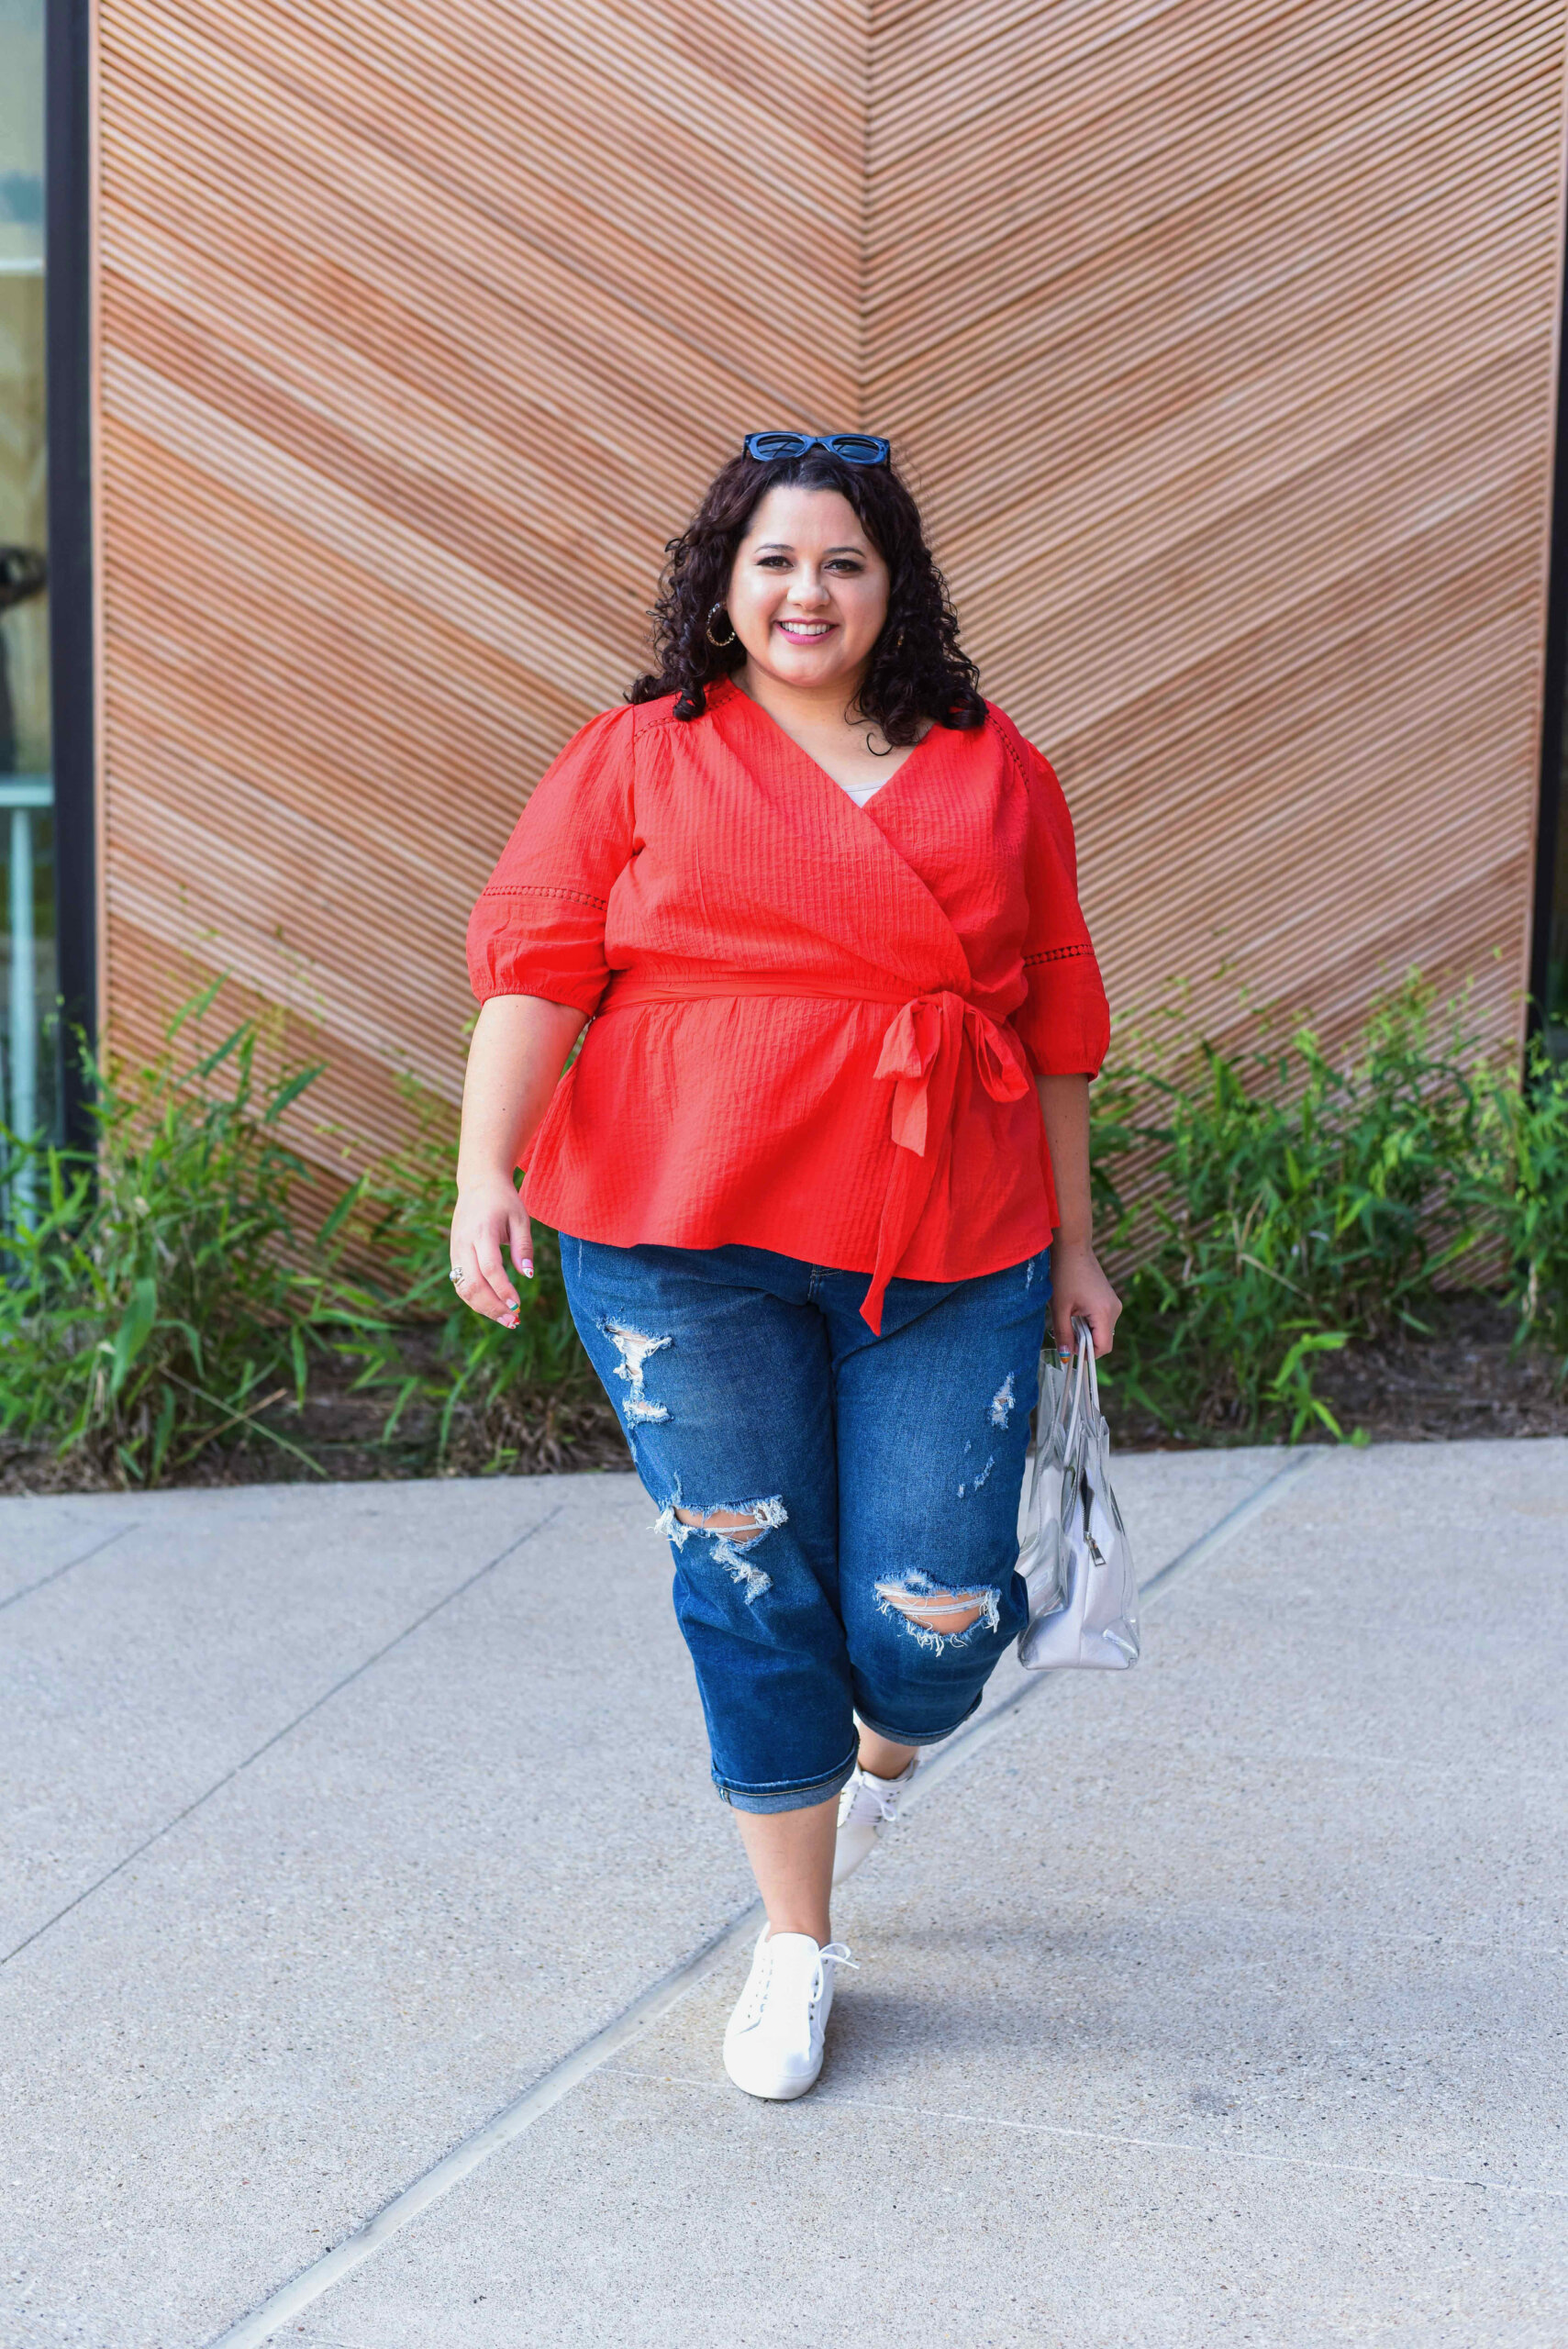 Red peplum tie top and casual blue jeans make for the perfect Memorial Day outfit.